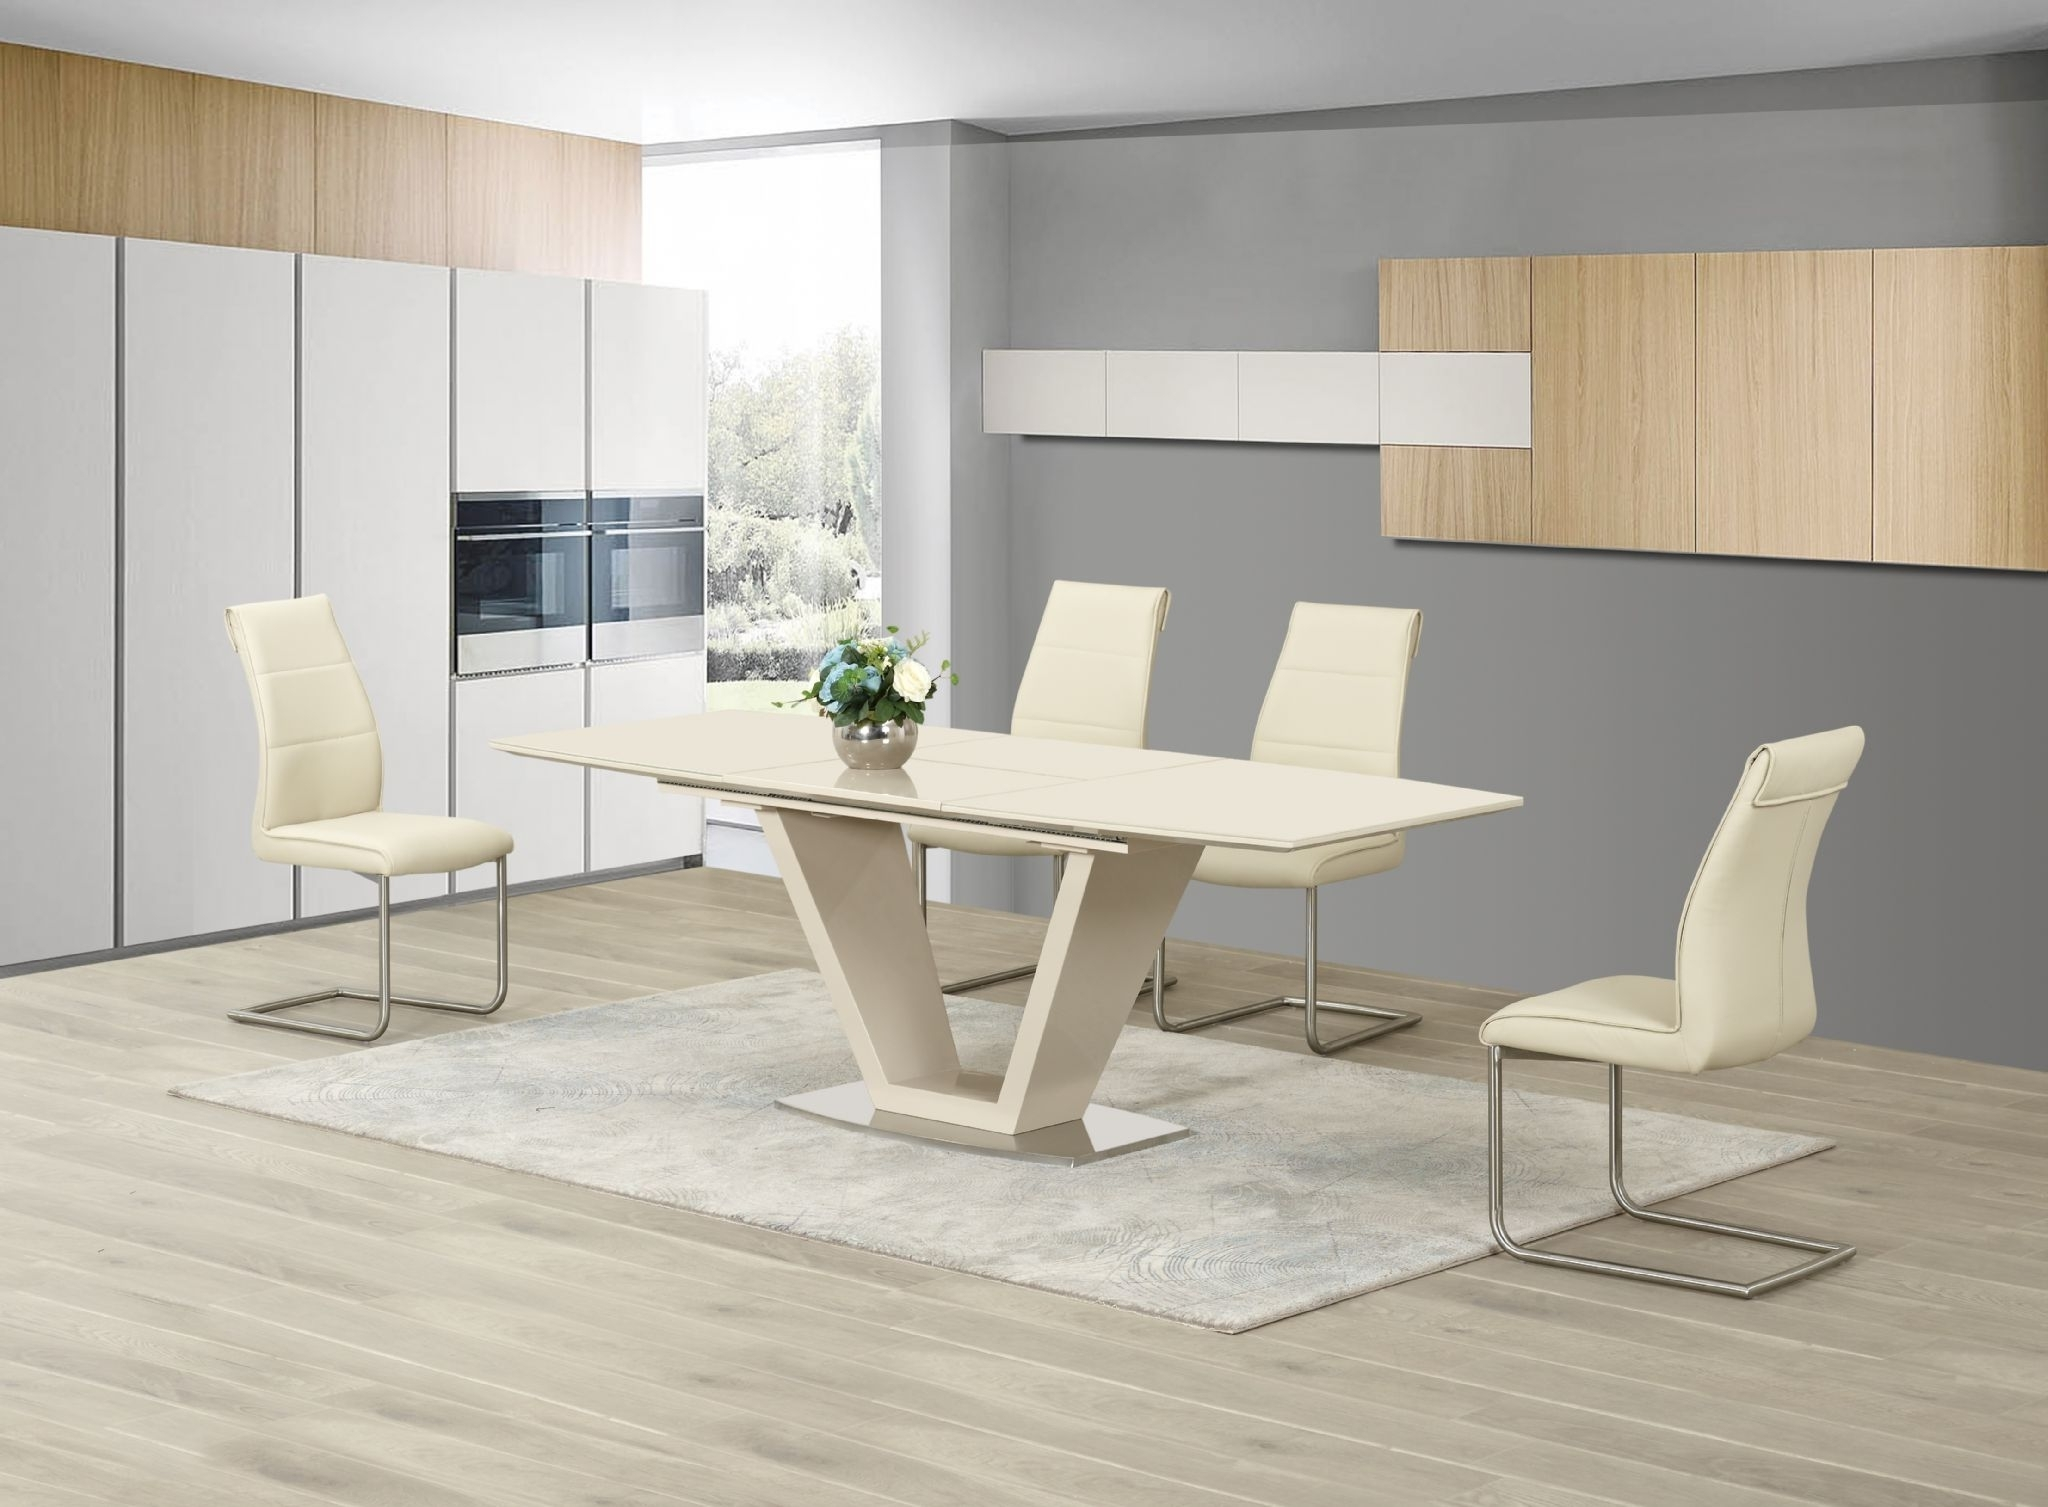 Fashionable Oak Extending Dining Tables And 6 Chairs In Ga Loriga Cream Gloss Glass Designer Dining Table Extending 160 (View 22 of 25)